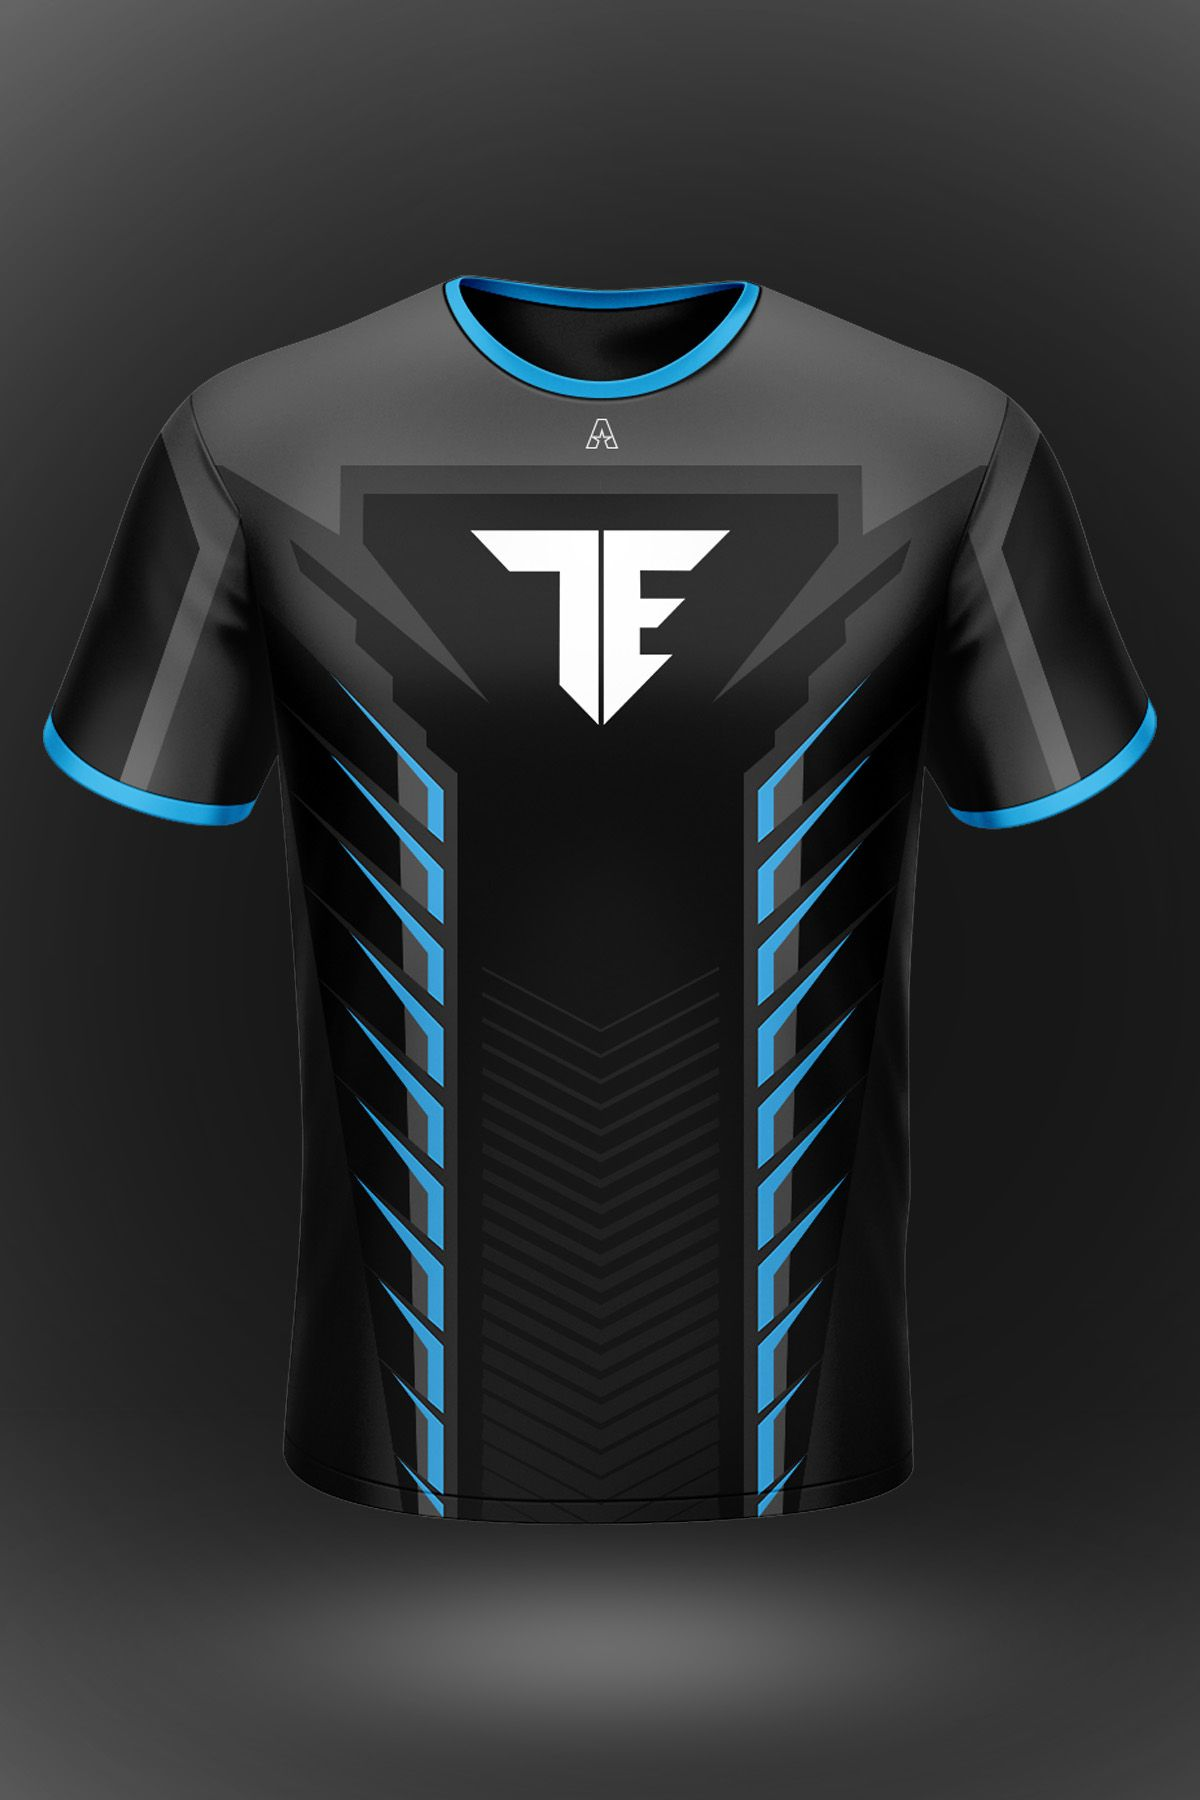 Team Exalted Jersey Akquire Clothing Co In 2020 Sport Shirt Design Jersey Design Soccer Shirts